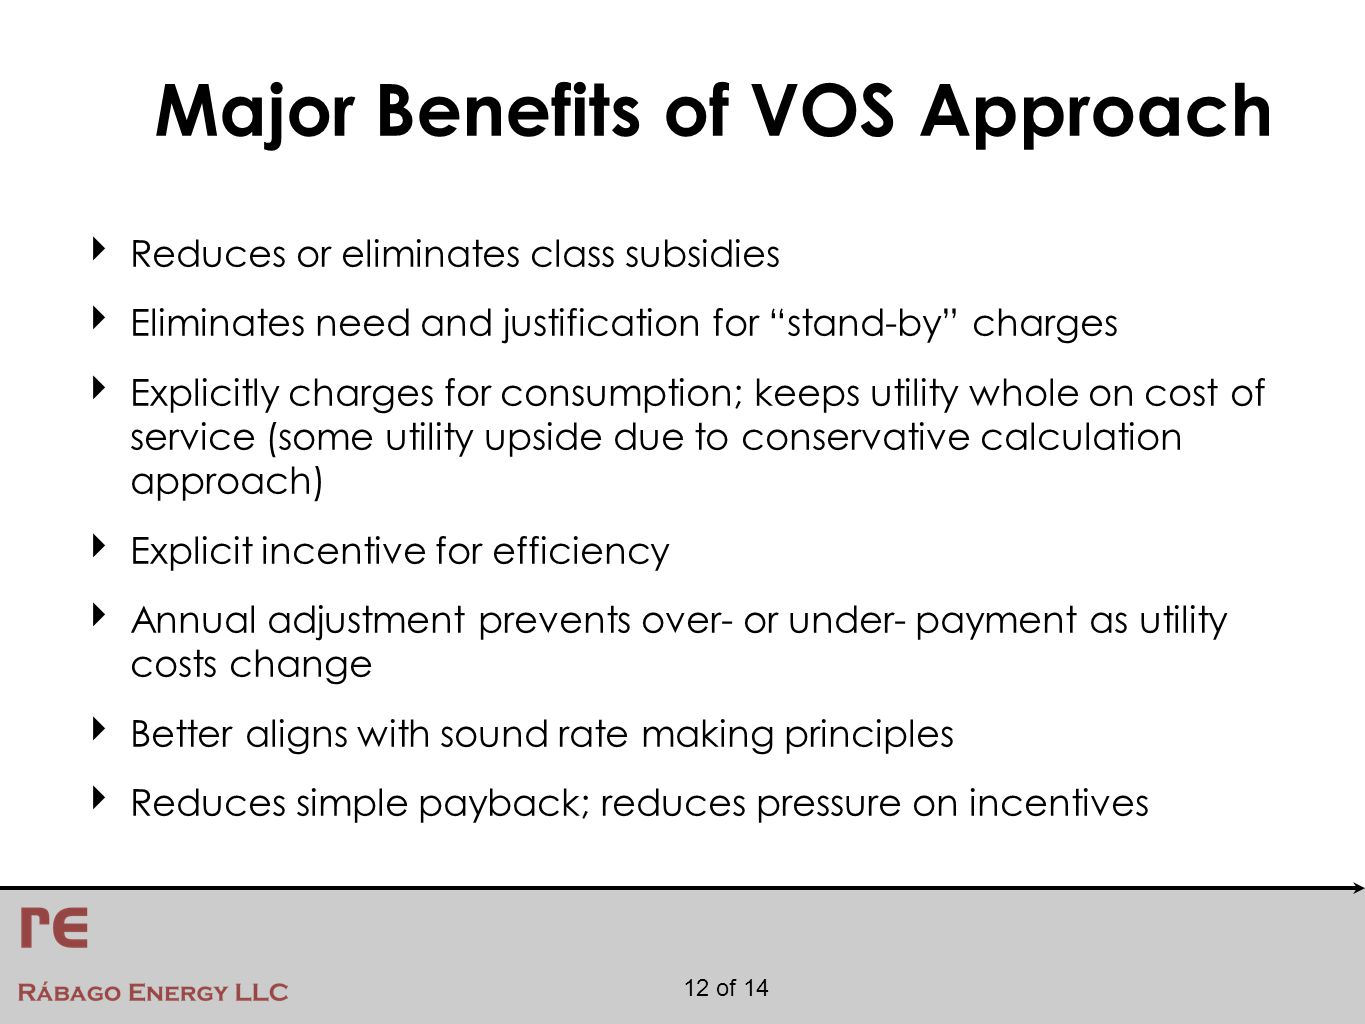 12 of 14 Major Benefits of VOS Approach ‣ Reduces or eliminates class subsidies ‣ Eliminates need and justification for stand-by charges ‣ Explicitly charges for consumption; keeps utility whole on cost of service (some utility upside due to conservative calculation approach) ‣ Explicit incentive for efficiency ‣ Annual adjustment prevents over- or under- payment as utility costs change ‣ Better aligns with sound rate making principles ‣ Reduces simple payback; reduces pressure on incentives